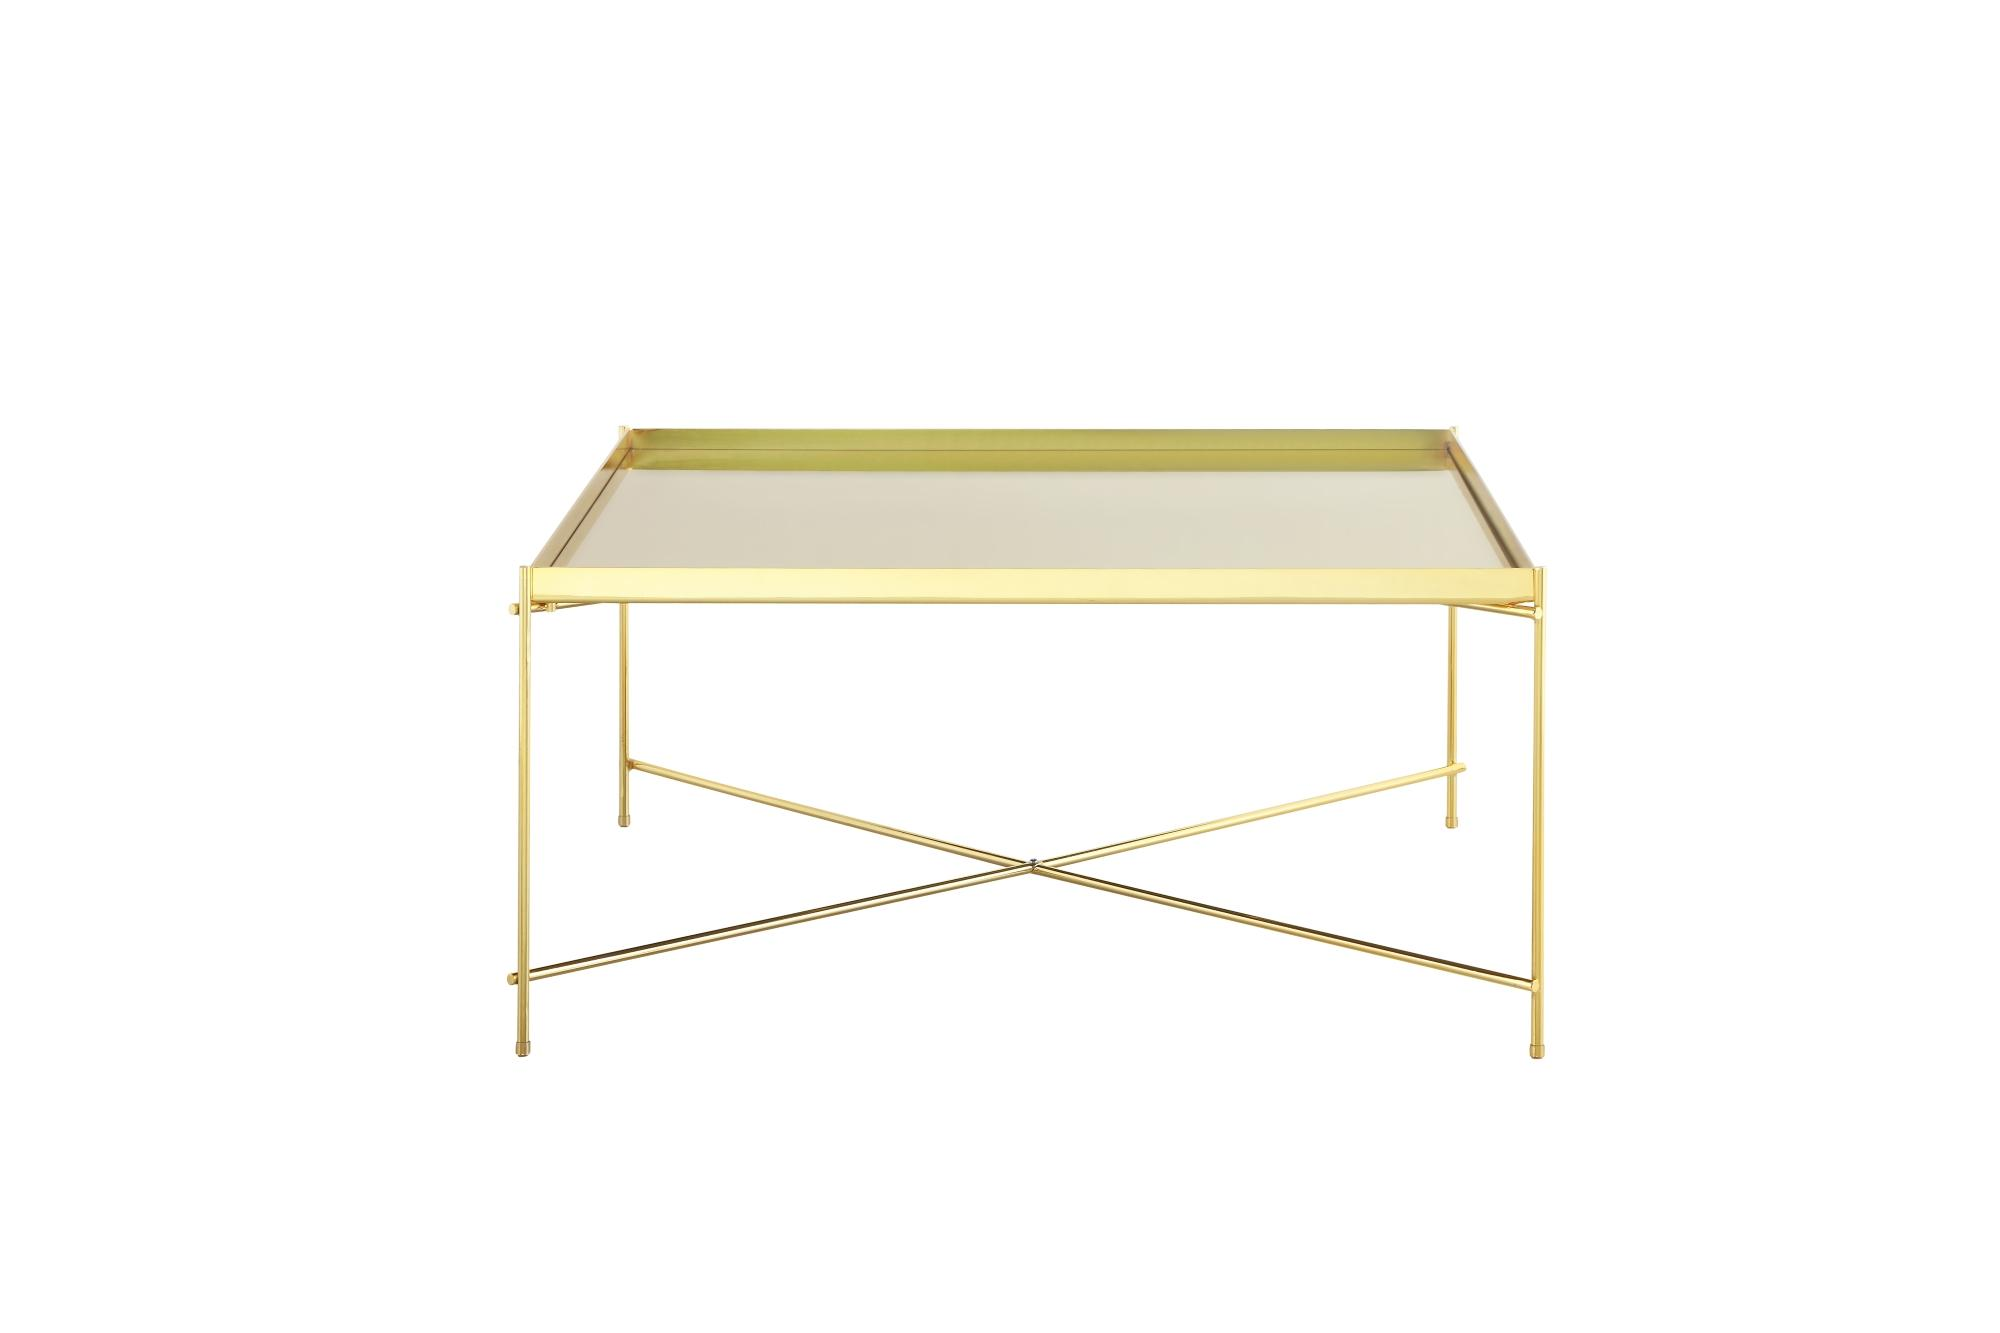 Oakland Gold Metal Mirror Coffee Table - Square